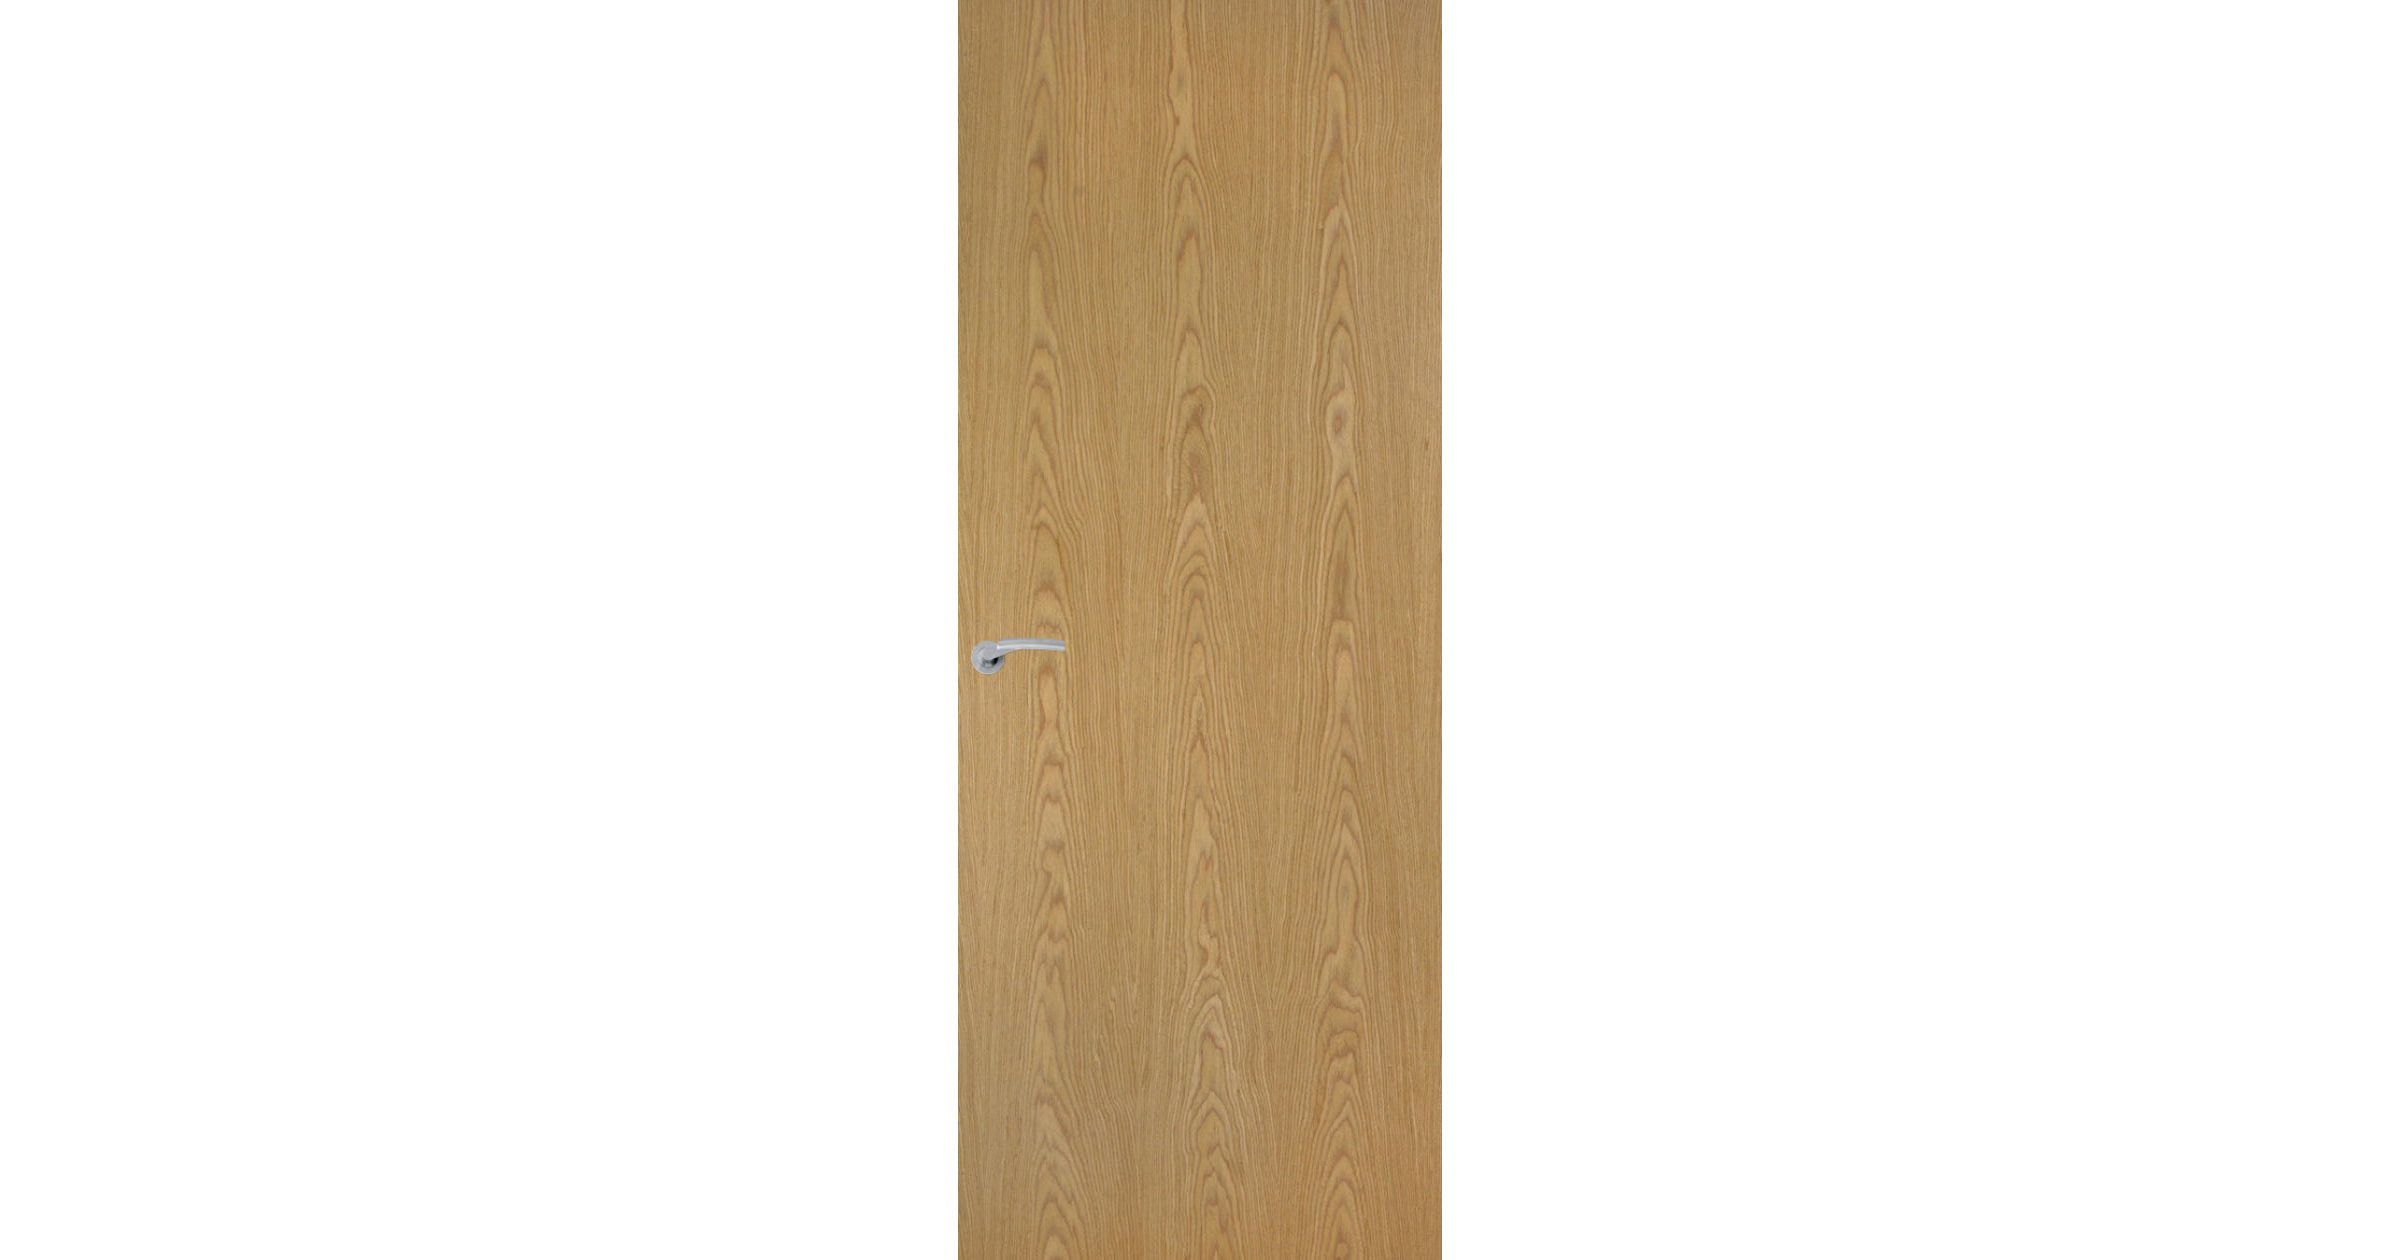 Oak Fire Door - Fireshield™ FD30 44mm Internal  White Oak Half-Hour Firecheck - Premdor®